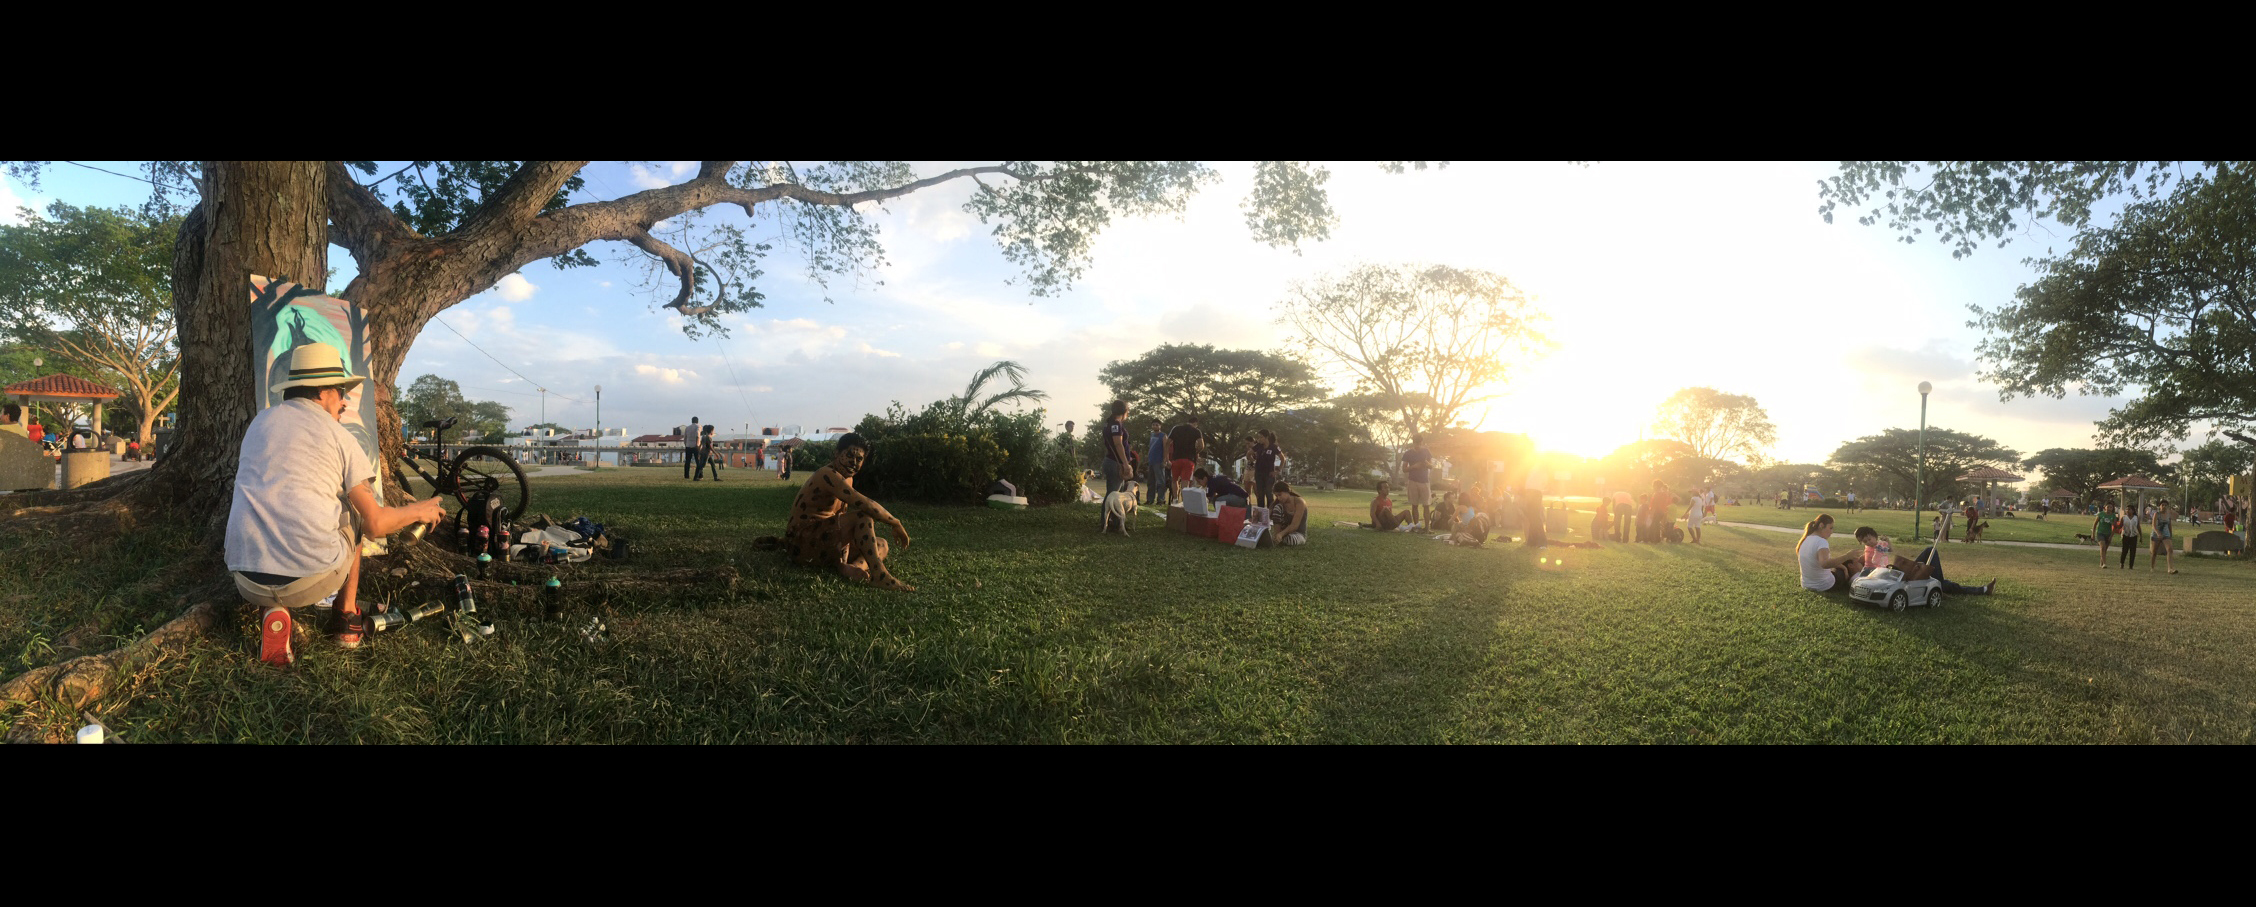 panoramica-iphone-parque-lachoca